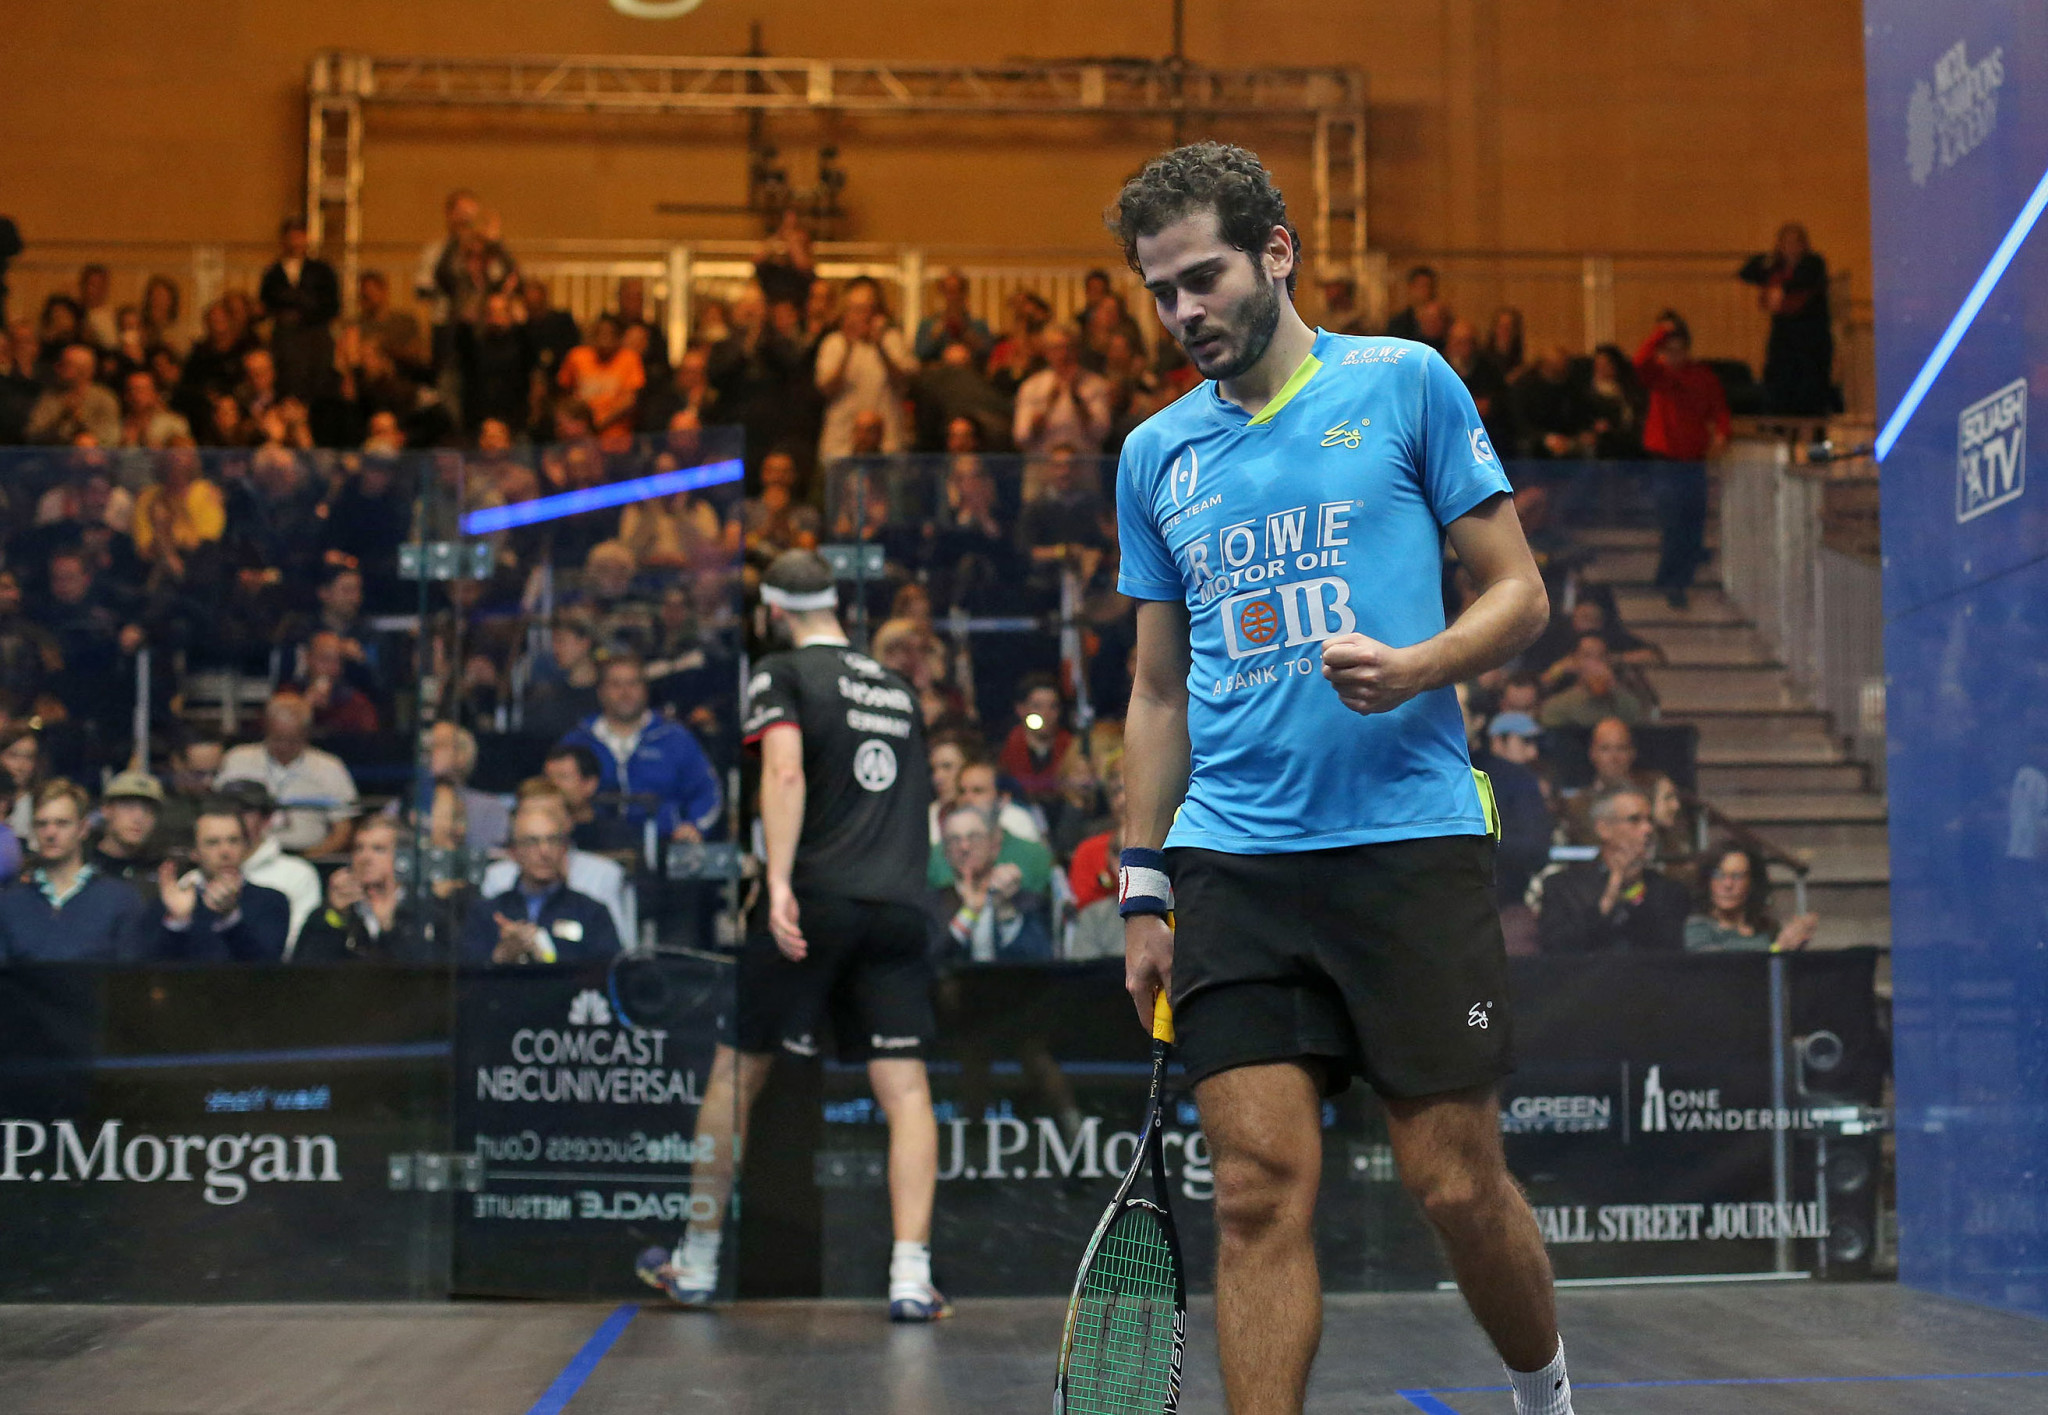 Gawad beats defending champion Rösner to reach semi-finals at PSA Tournament of Champions